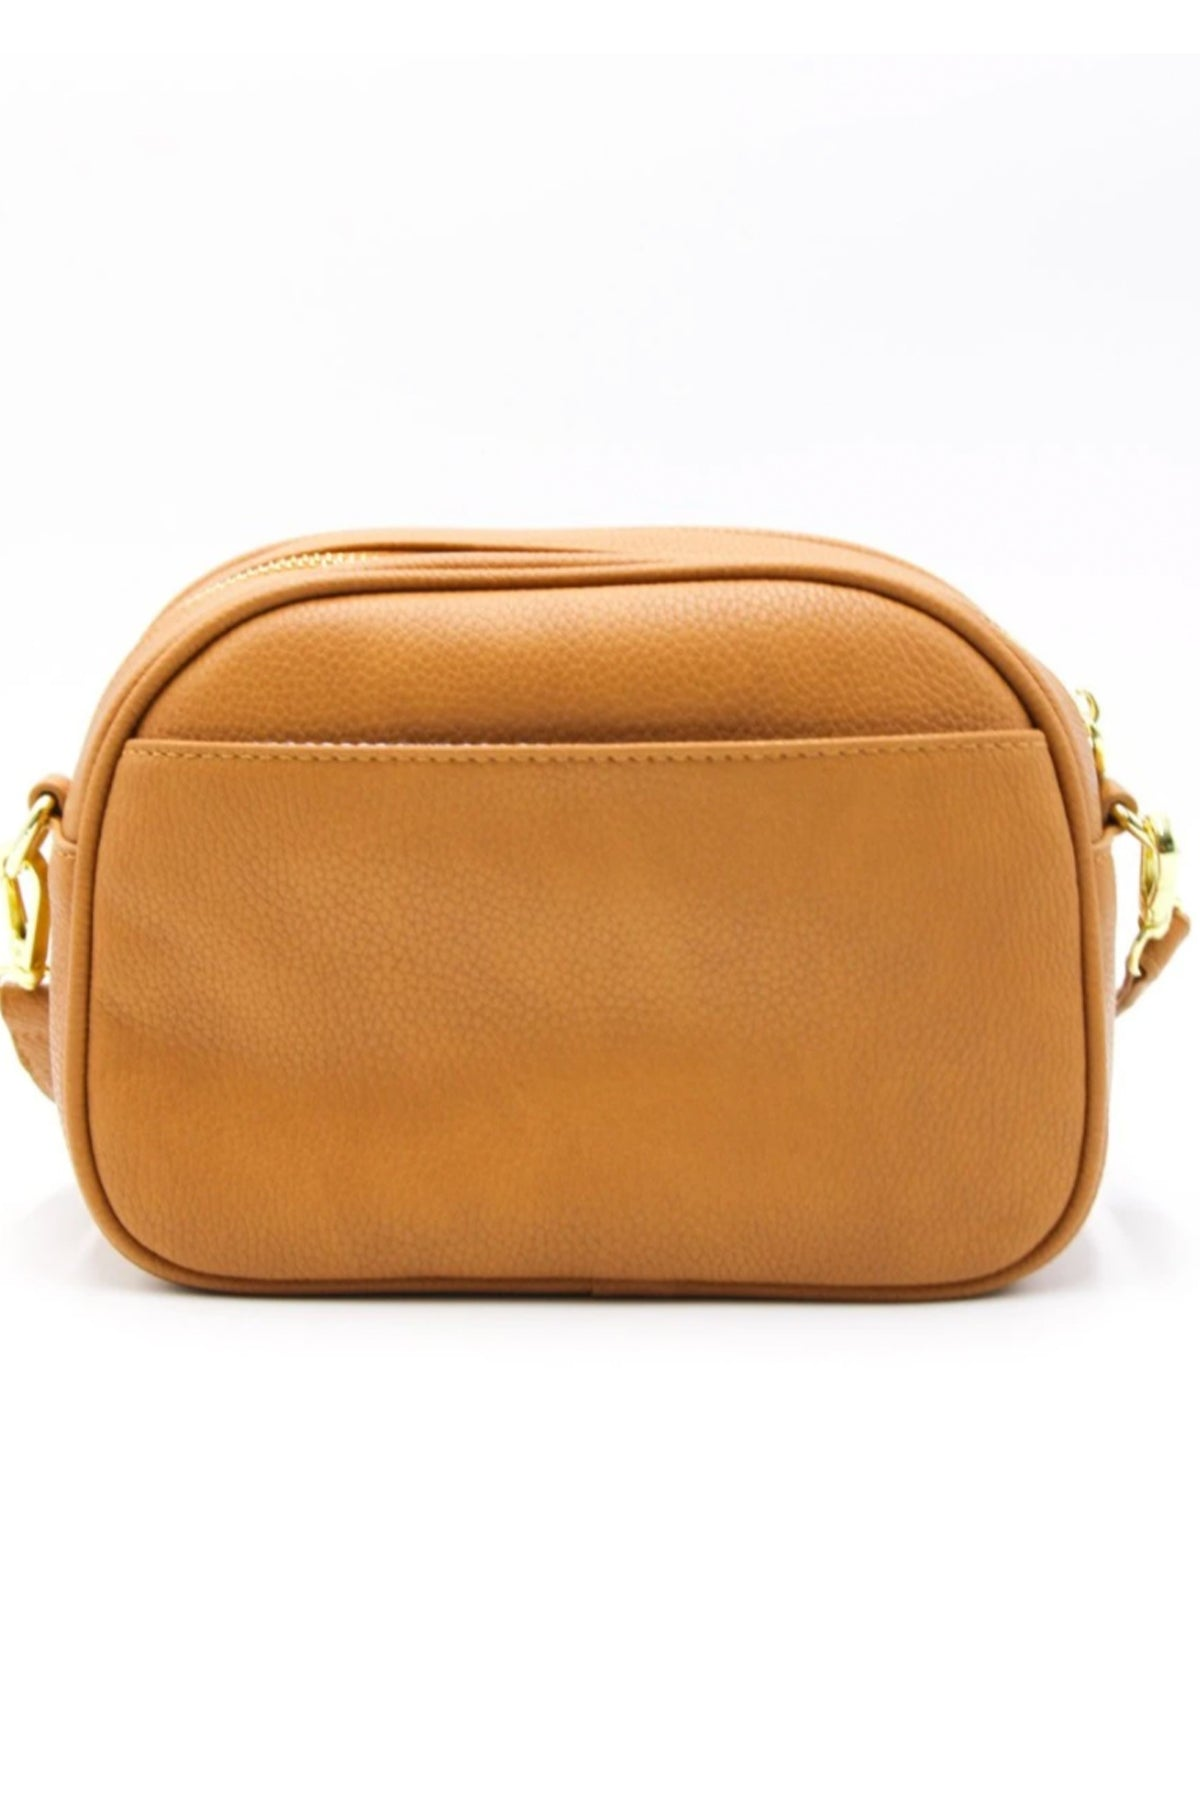 lucia curve cross body bag tan